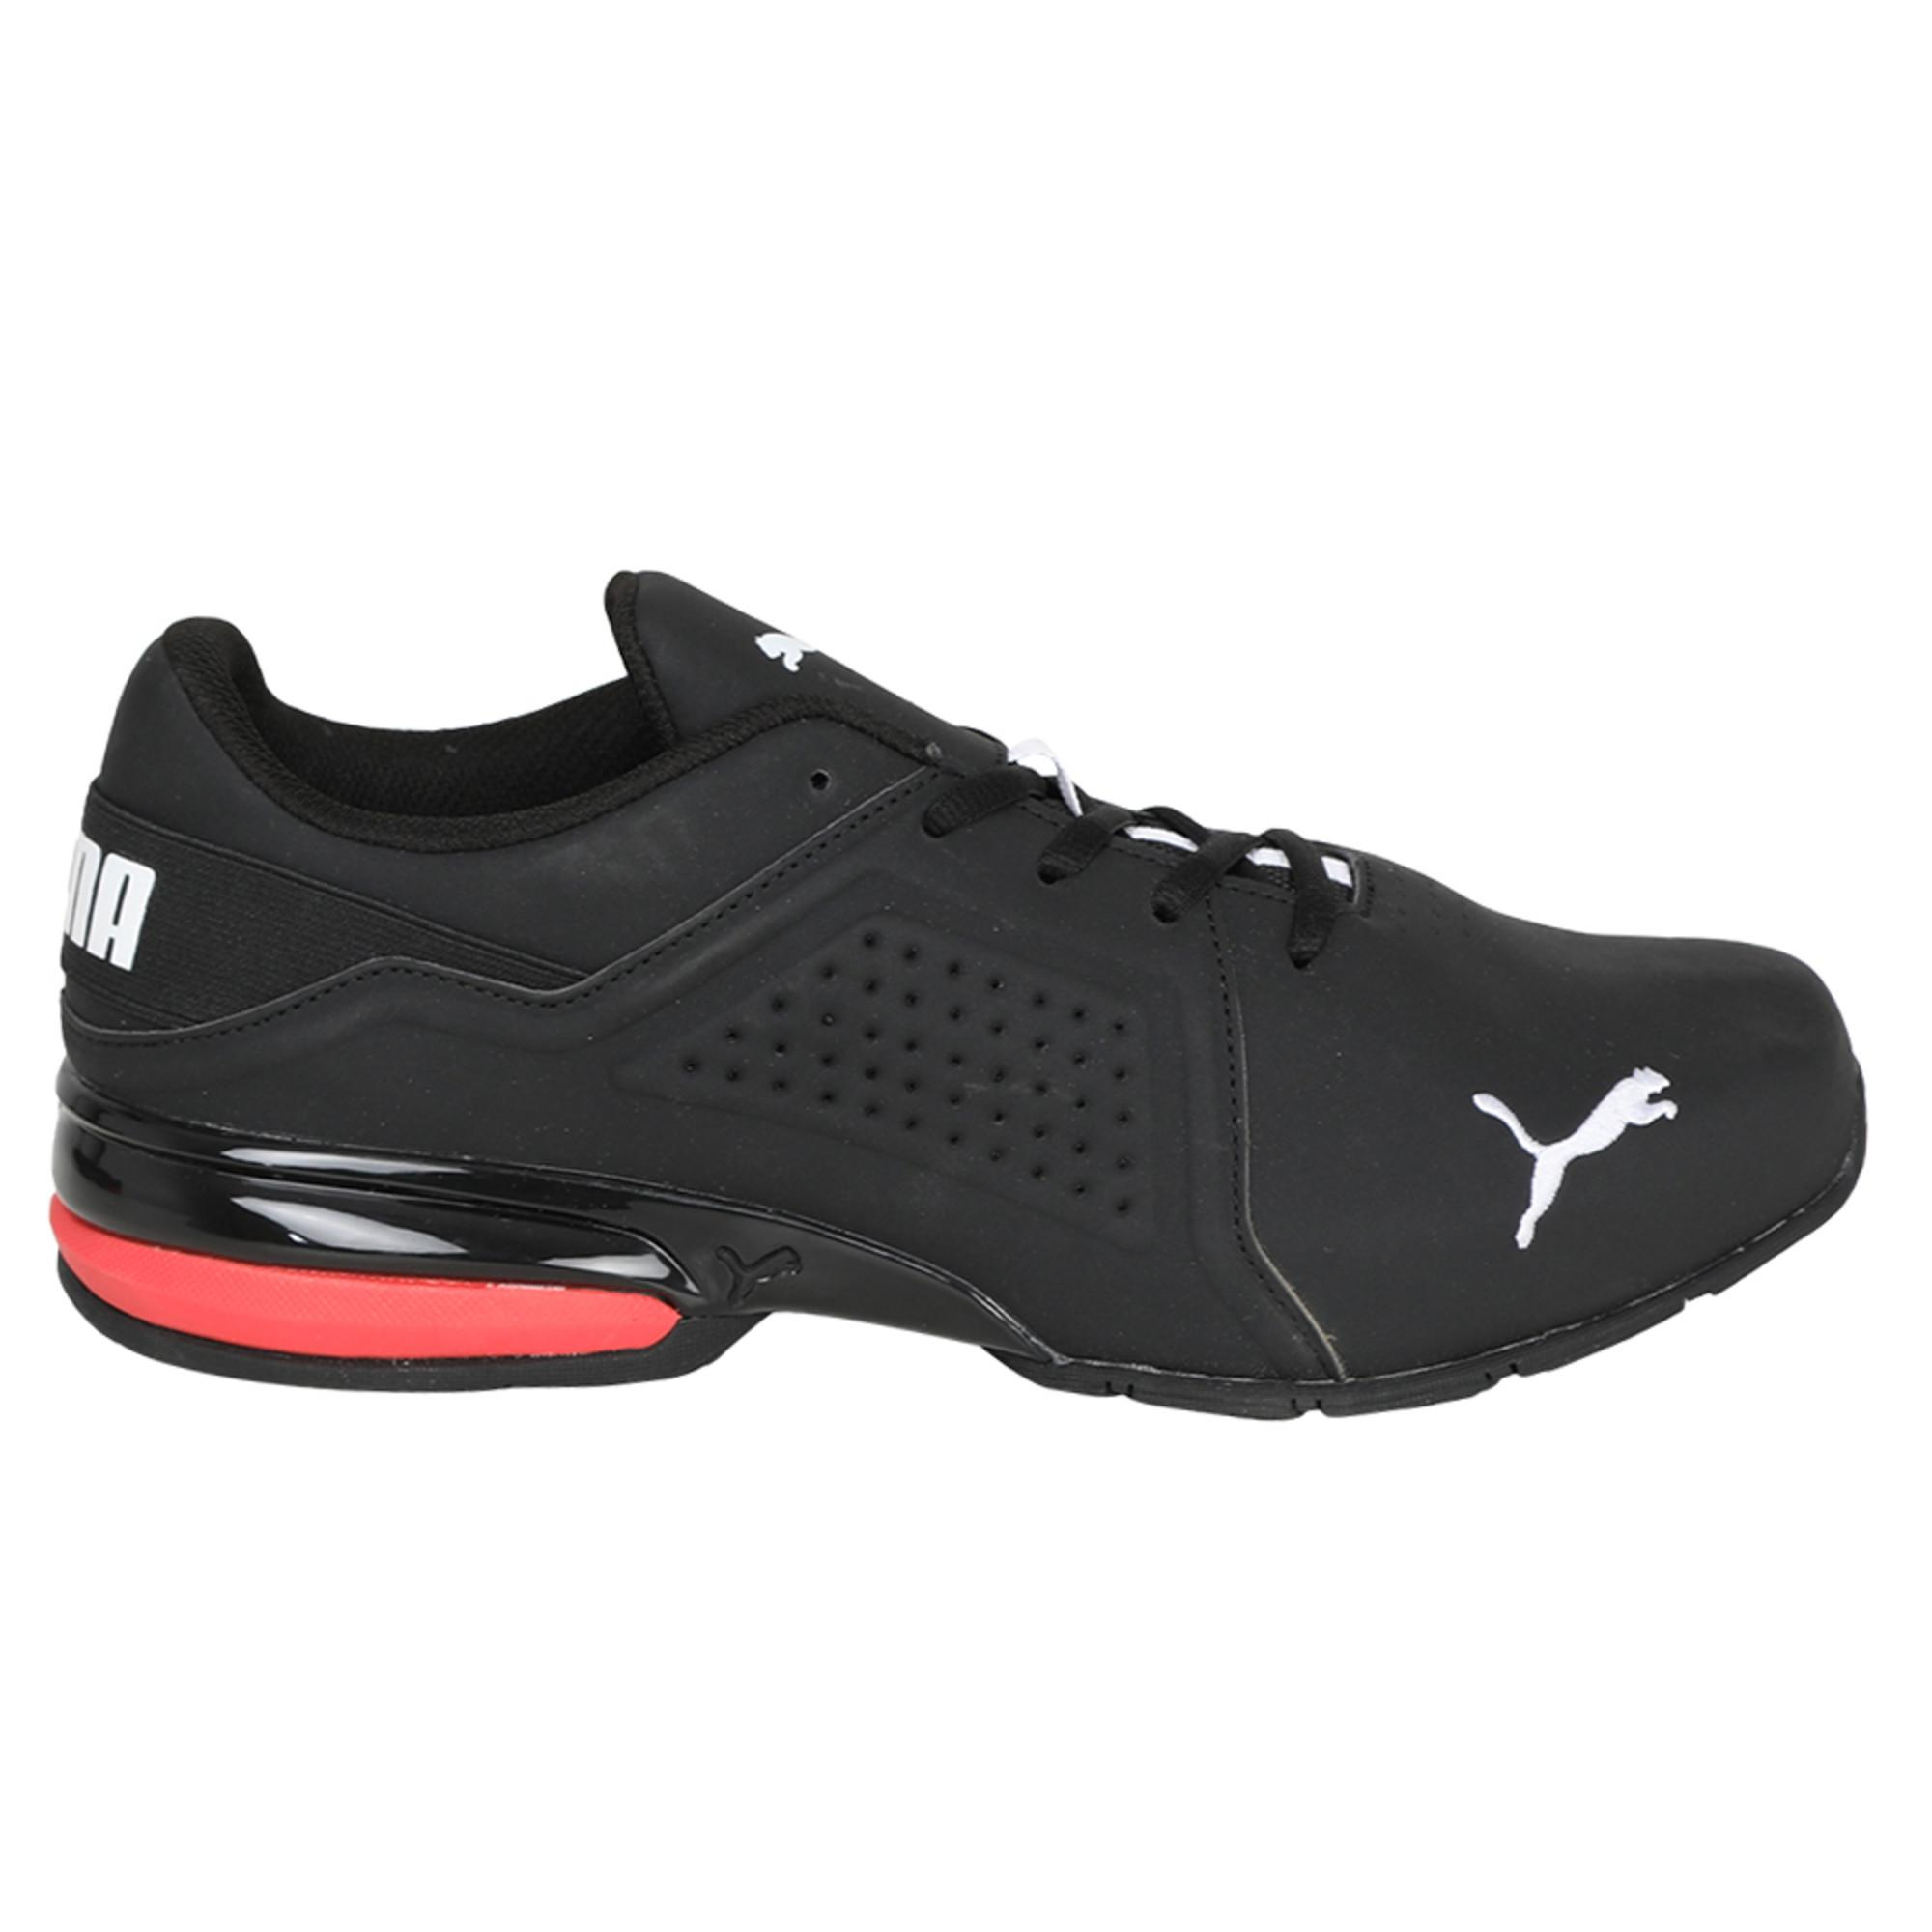 0cda365a4f9575 PUMA Viz Runner Men's Running Shoes in Black for Men - Lyst